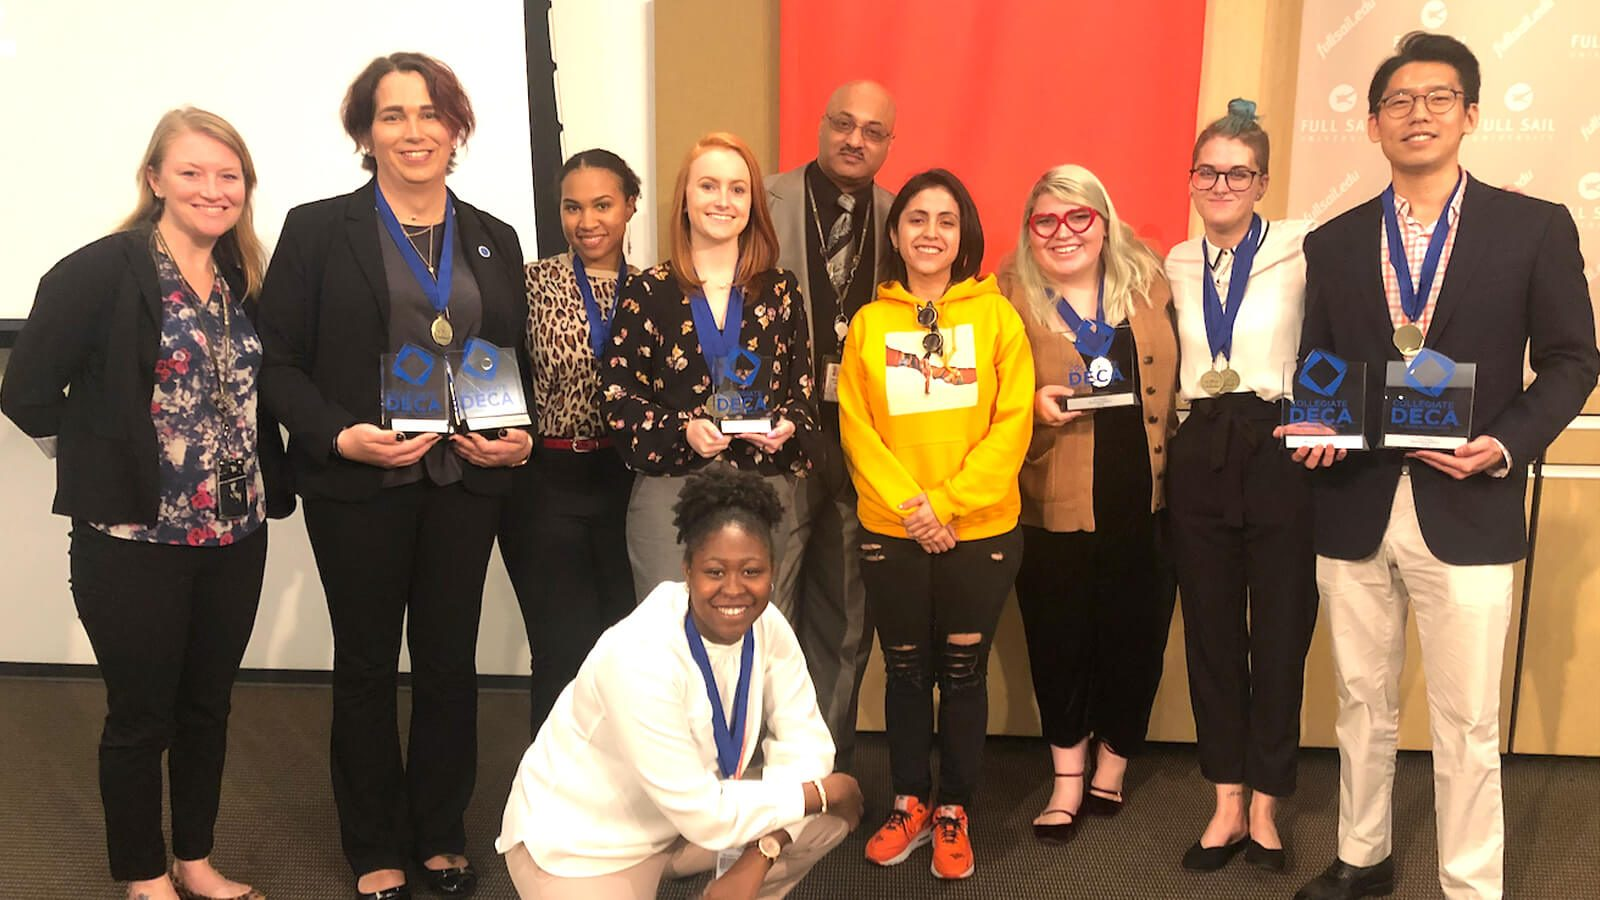 Students Take Home Top Honors at Collegiate DECA State Competition - Hero image